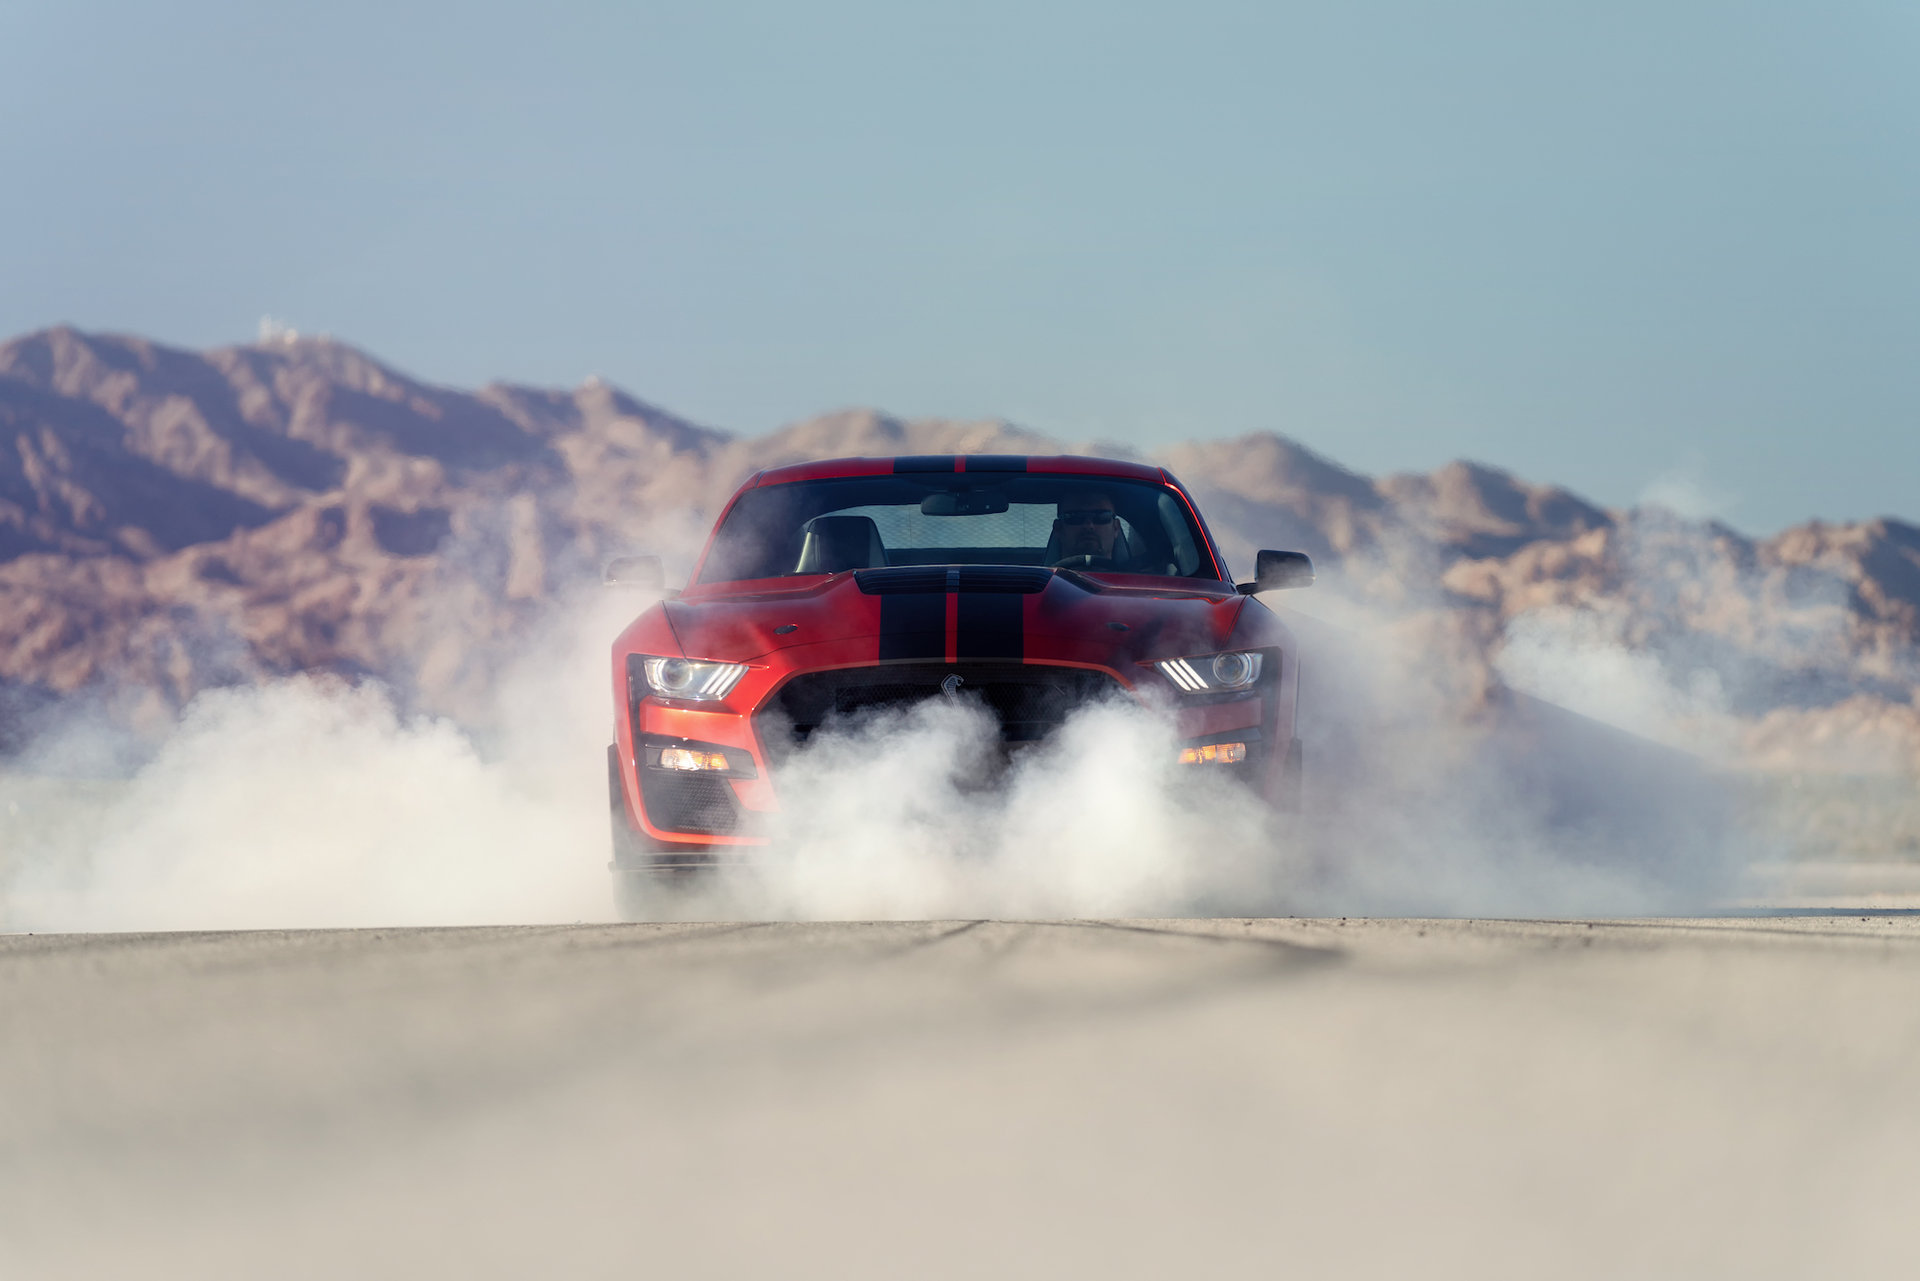 2020-ford-mustang-shelby-gt500-burnout.jpg